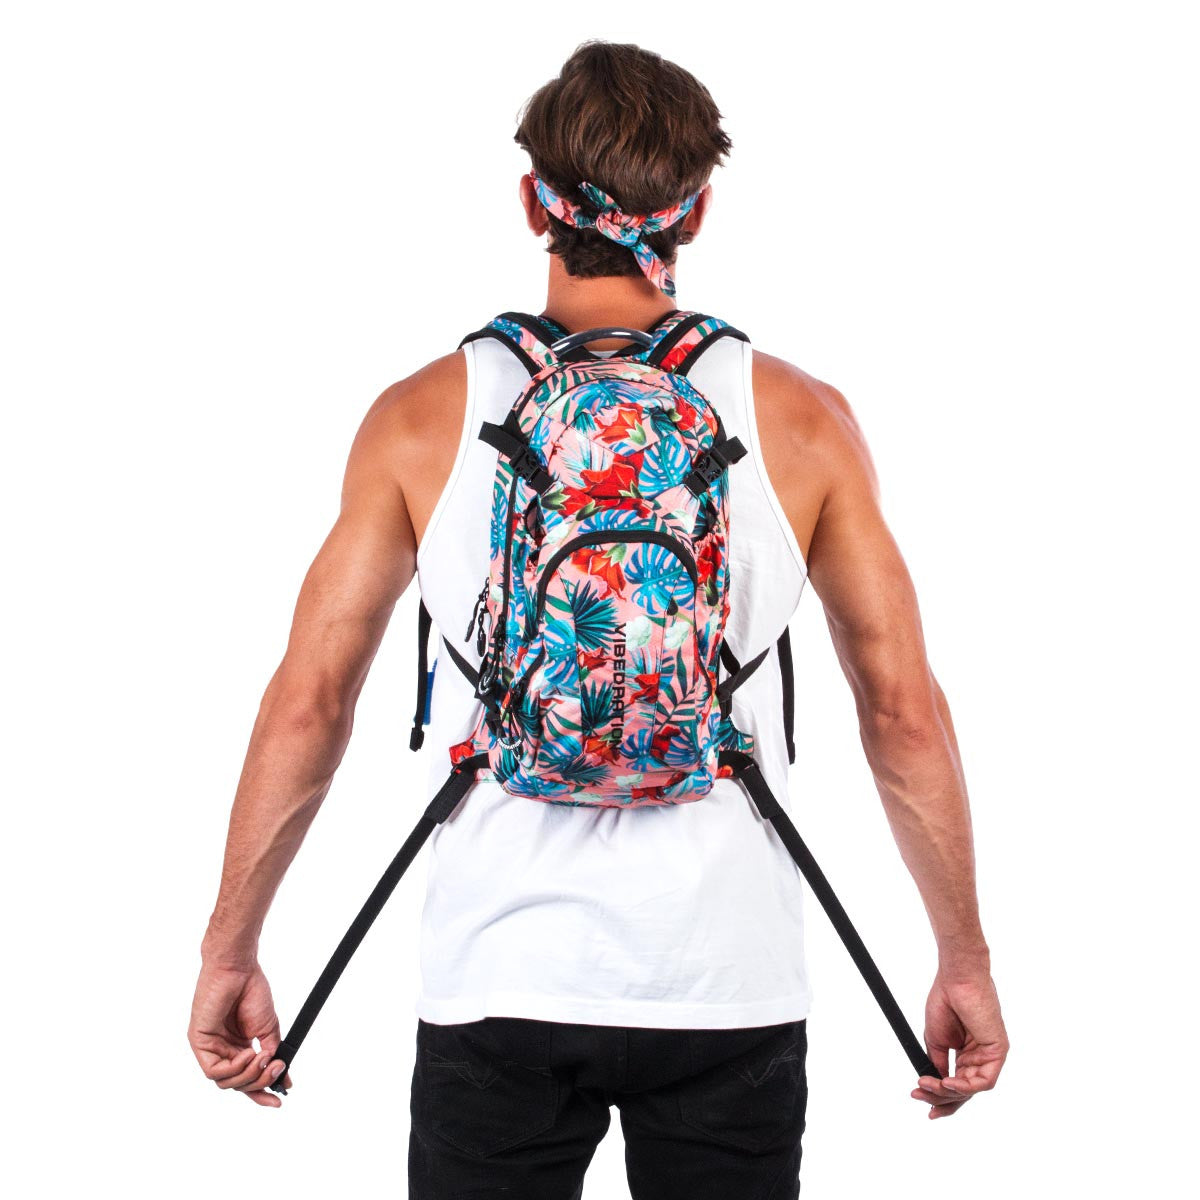 Back view of male wearing coral Hawaiian water backpack.